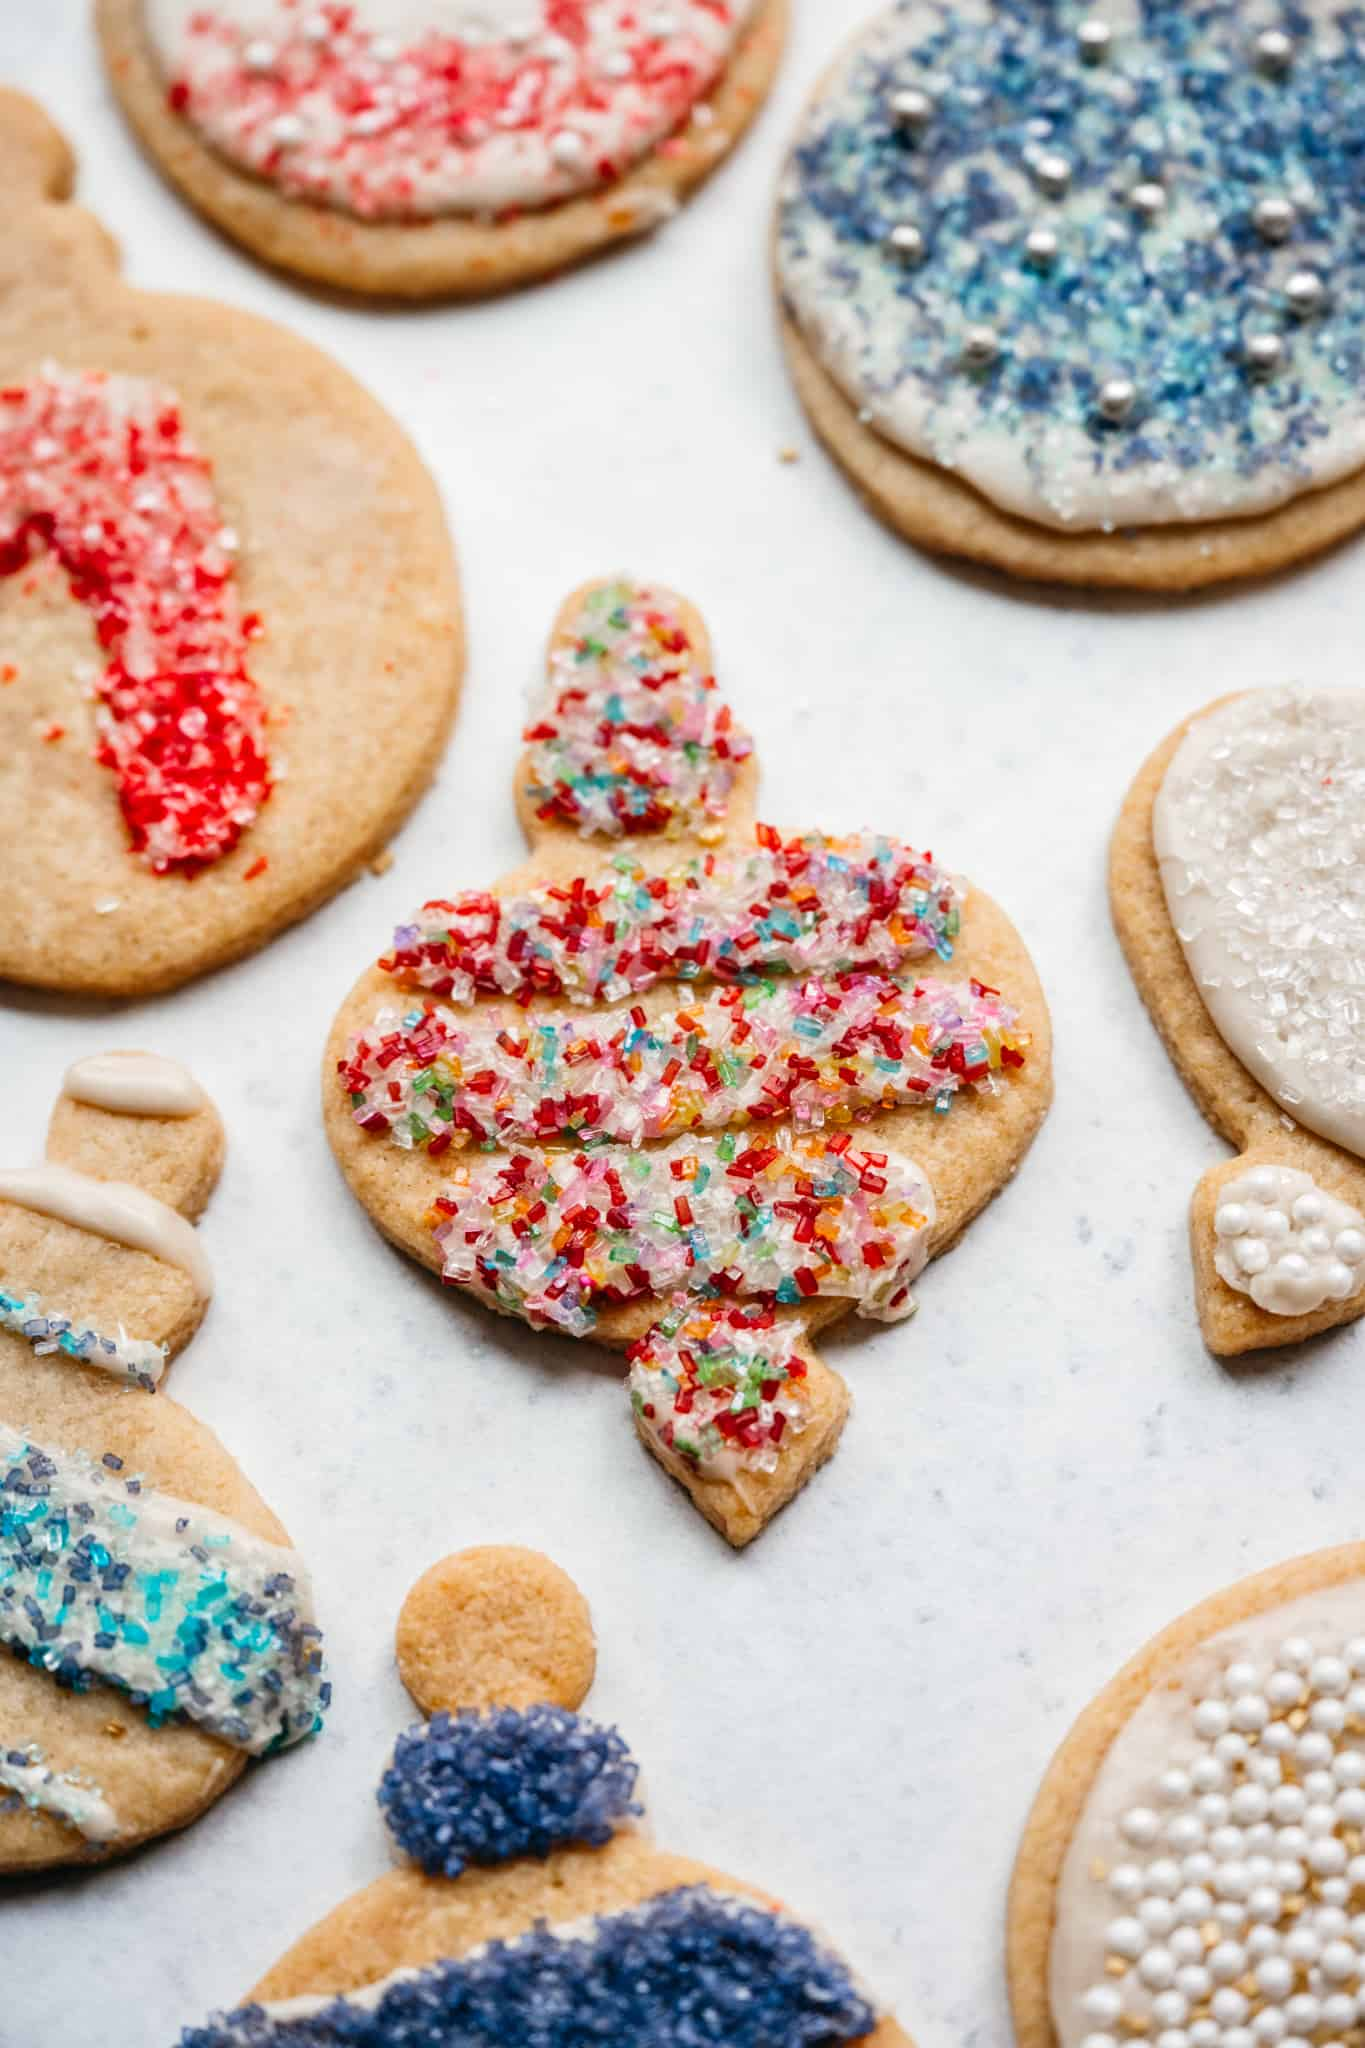 close up side view of vegan christmas sugar cookie in ornament shape with sprinkles